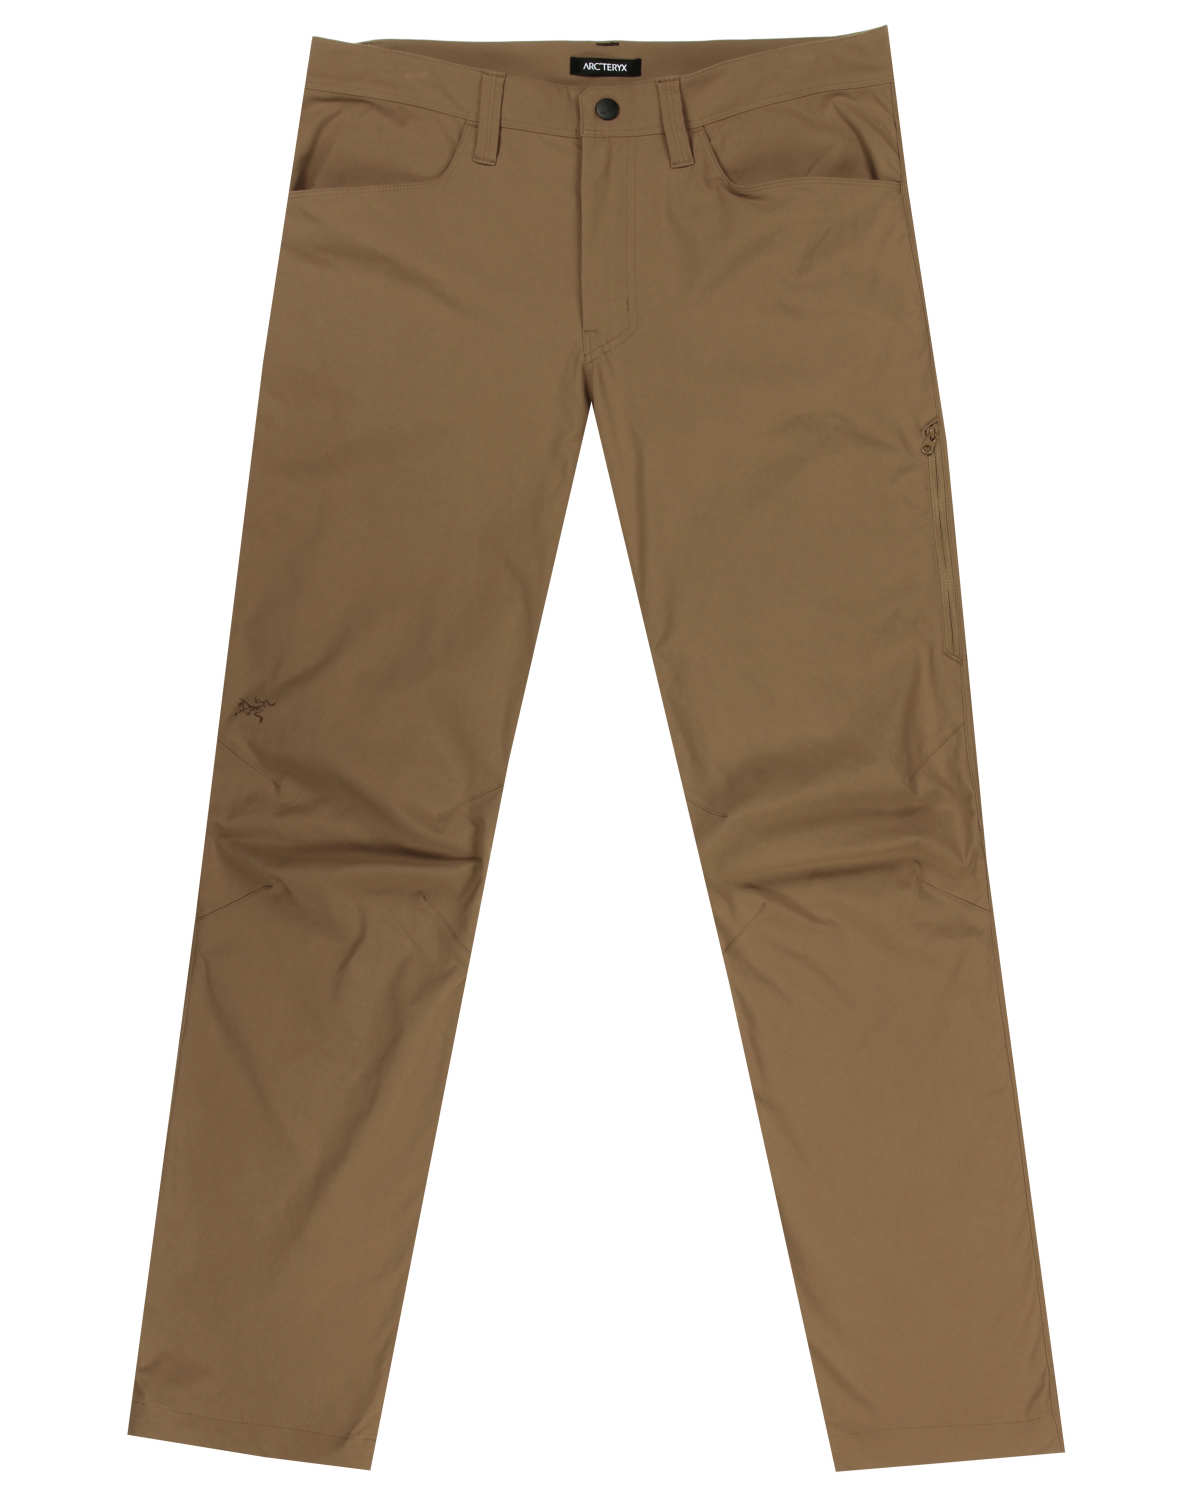 Main product image: Russet Pant Men's